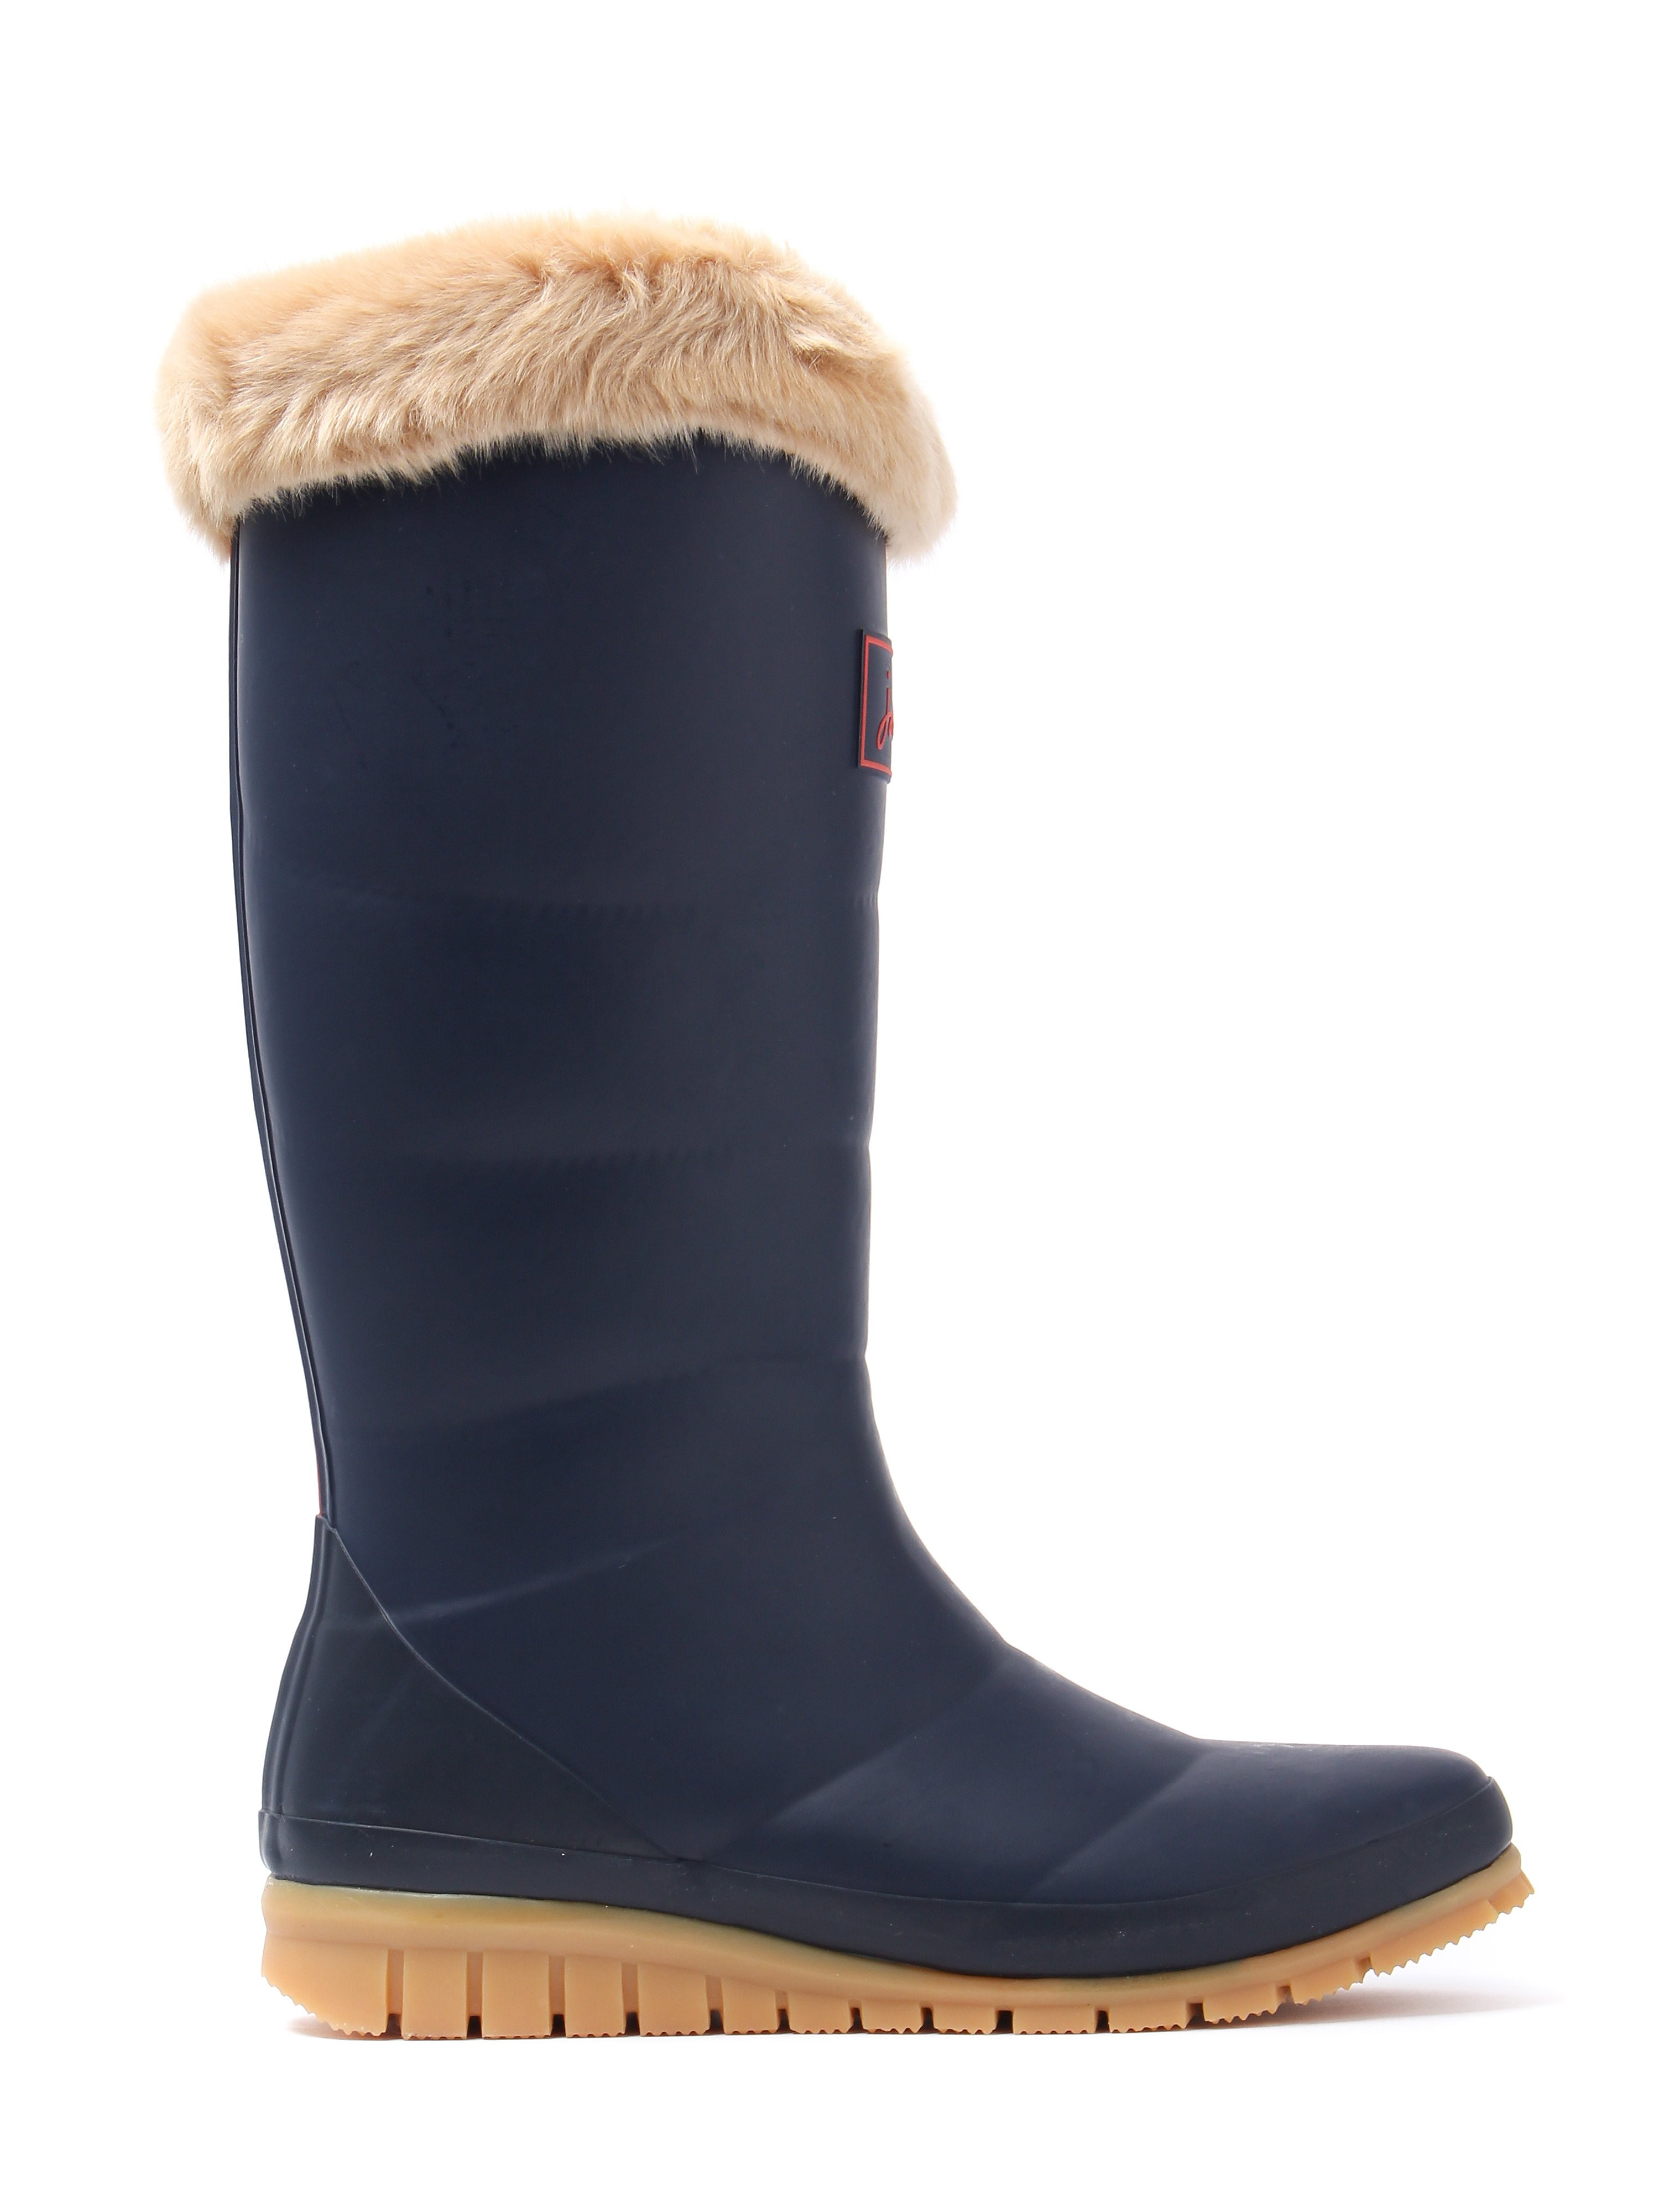 Joules Women's Downton Rubber Wellington Boots - French Navy